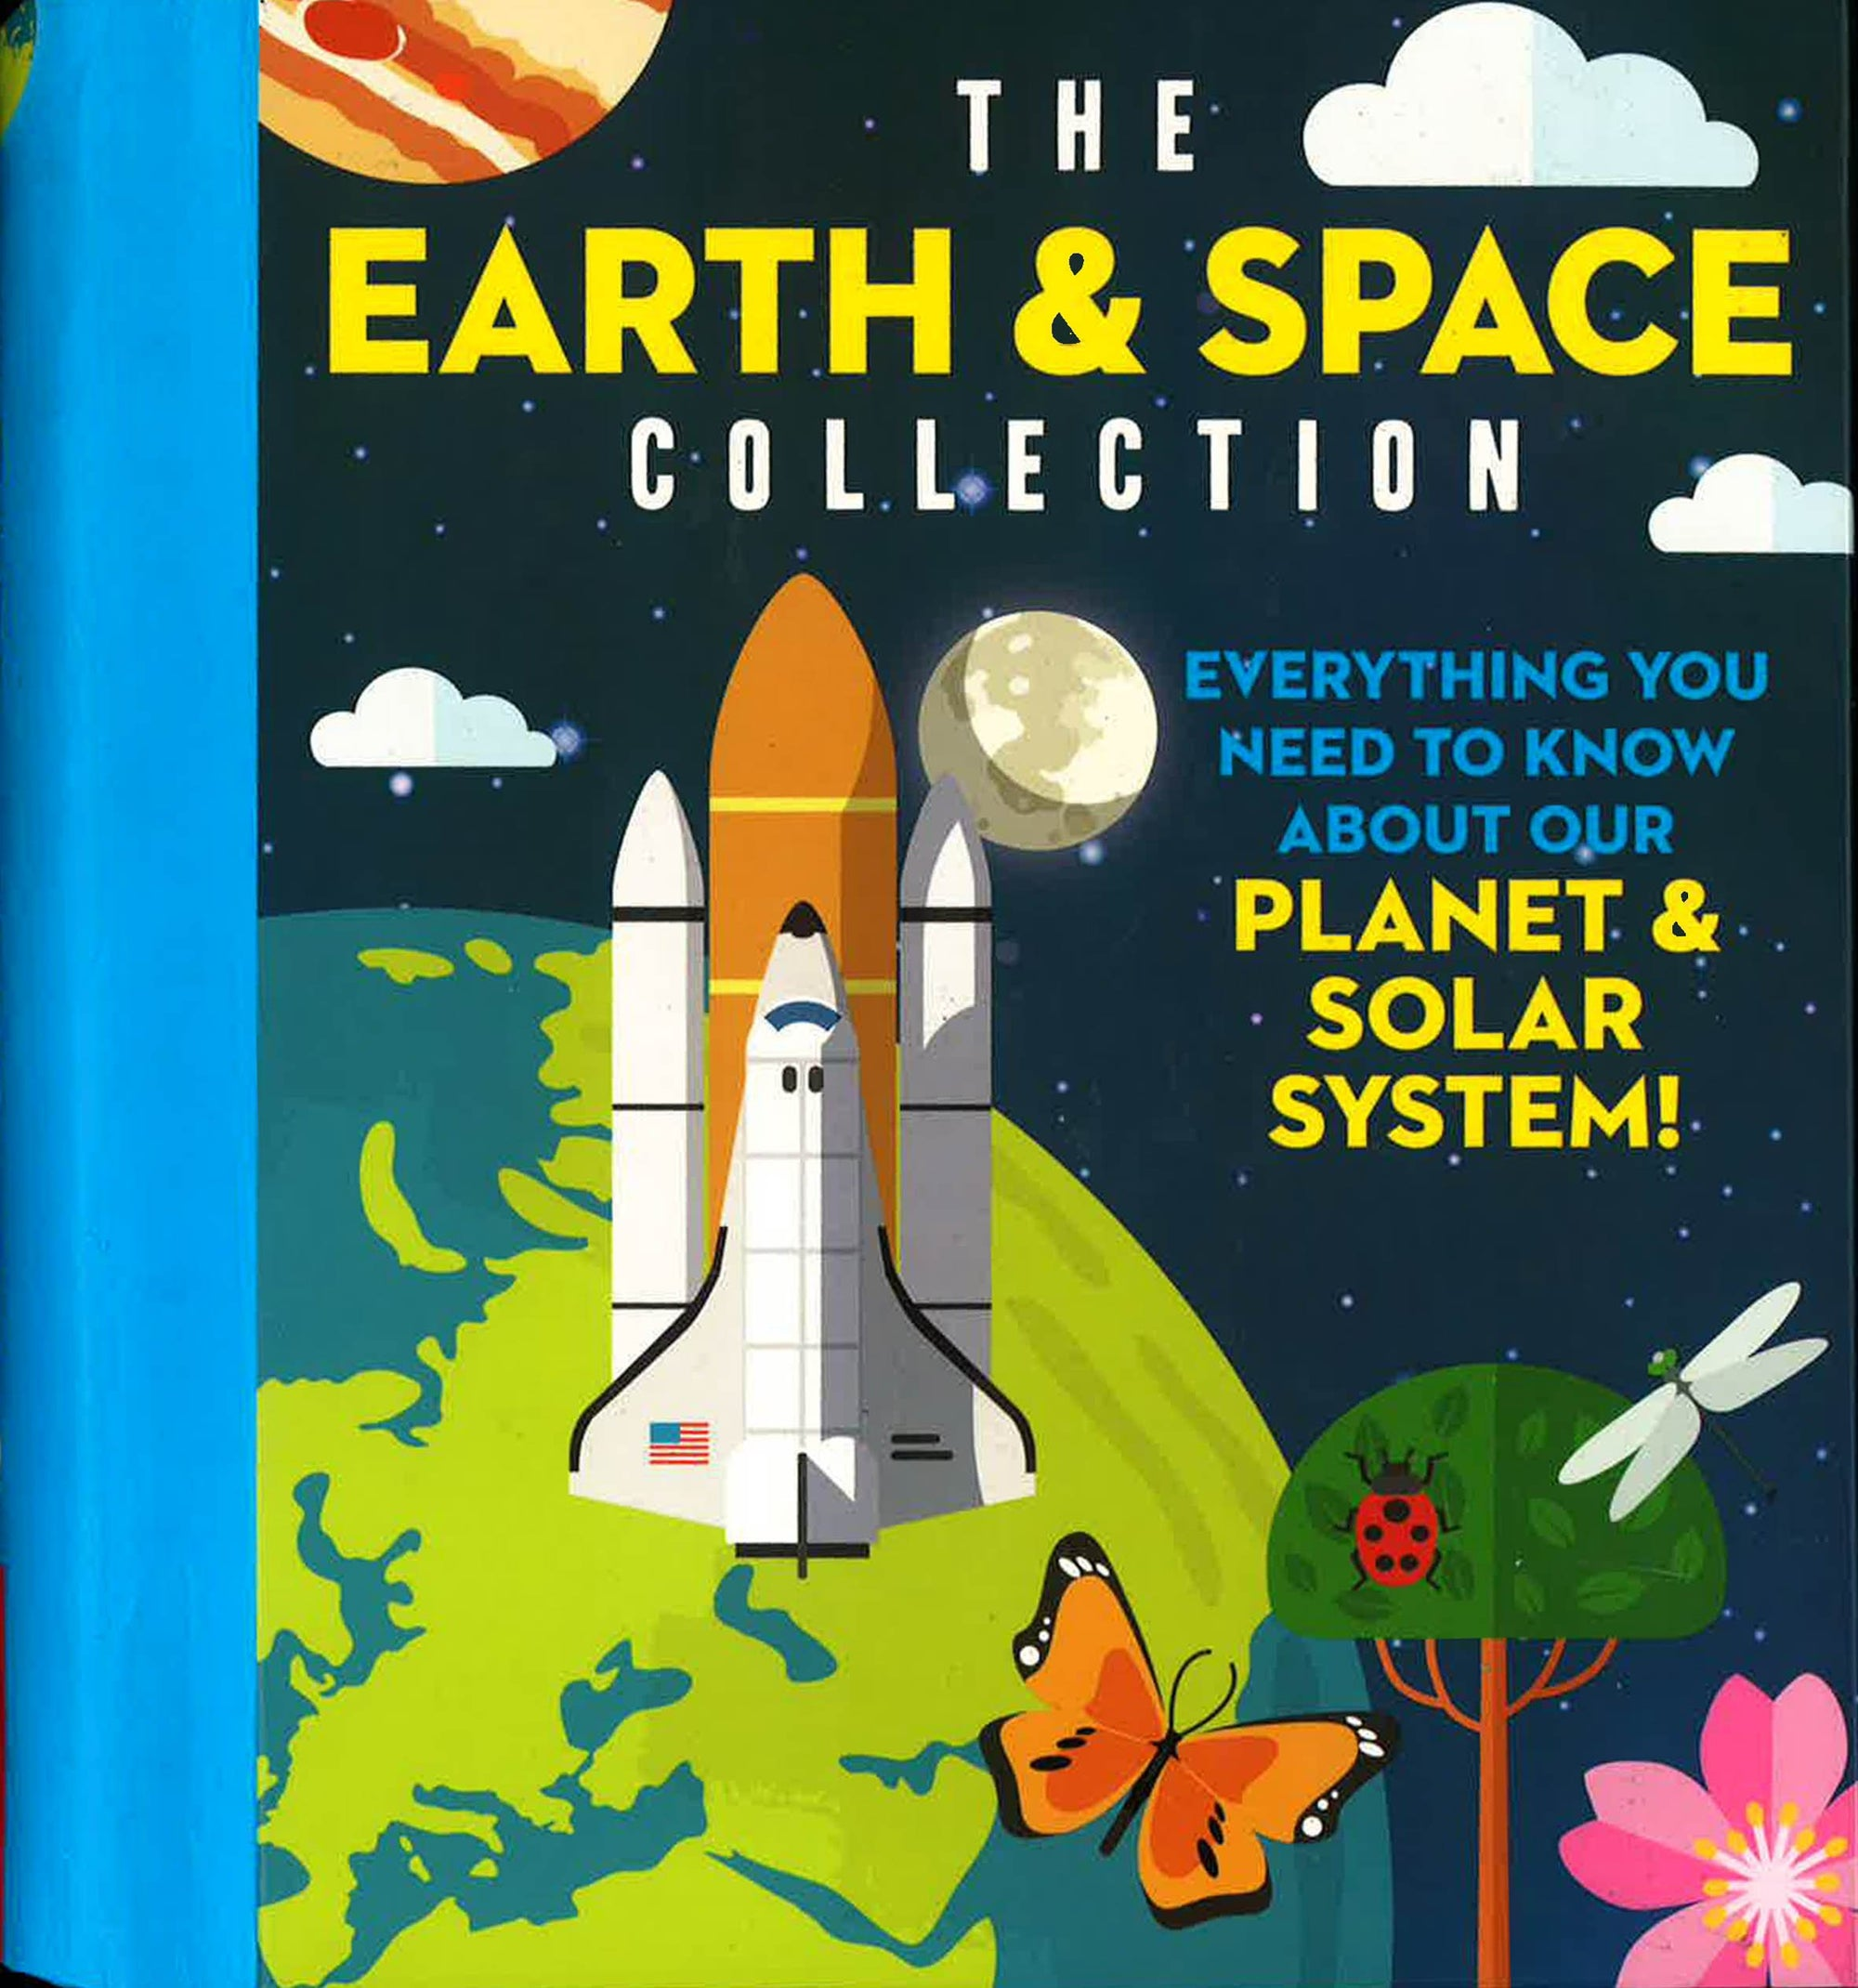 The Earth & Space Collection